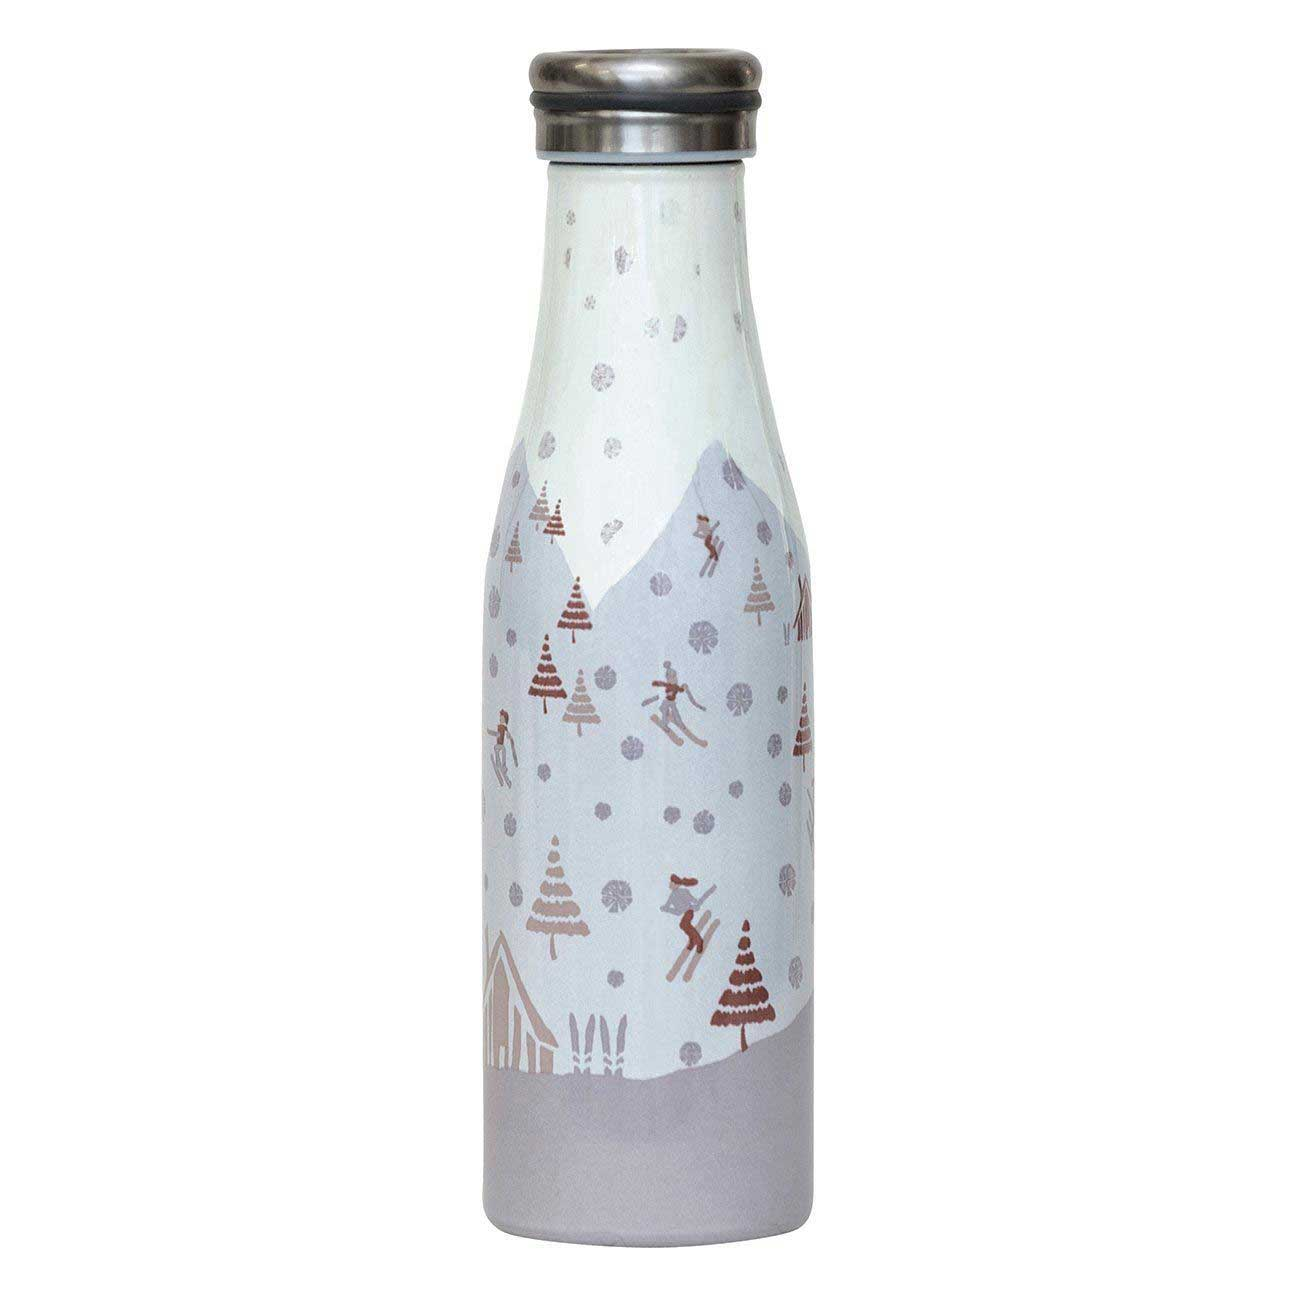 sk tan blu bottle - reusable water bottle in grey and beige